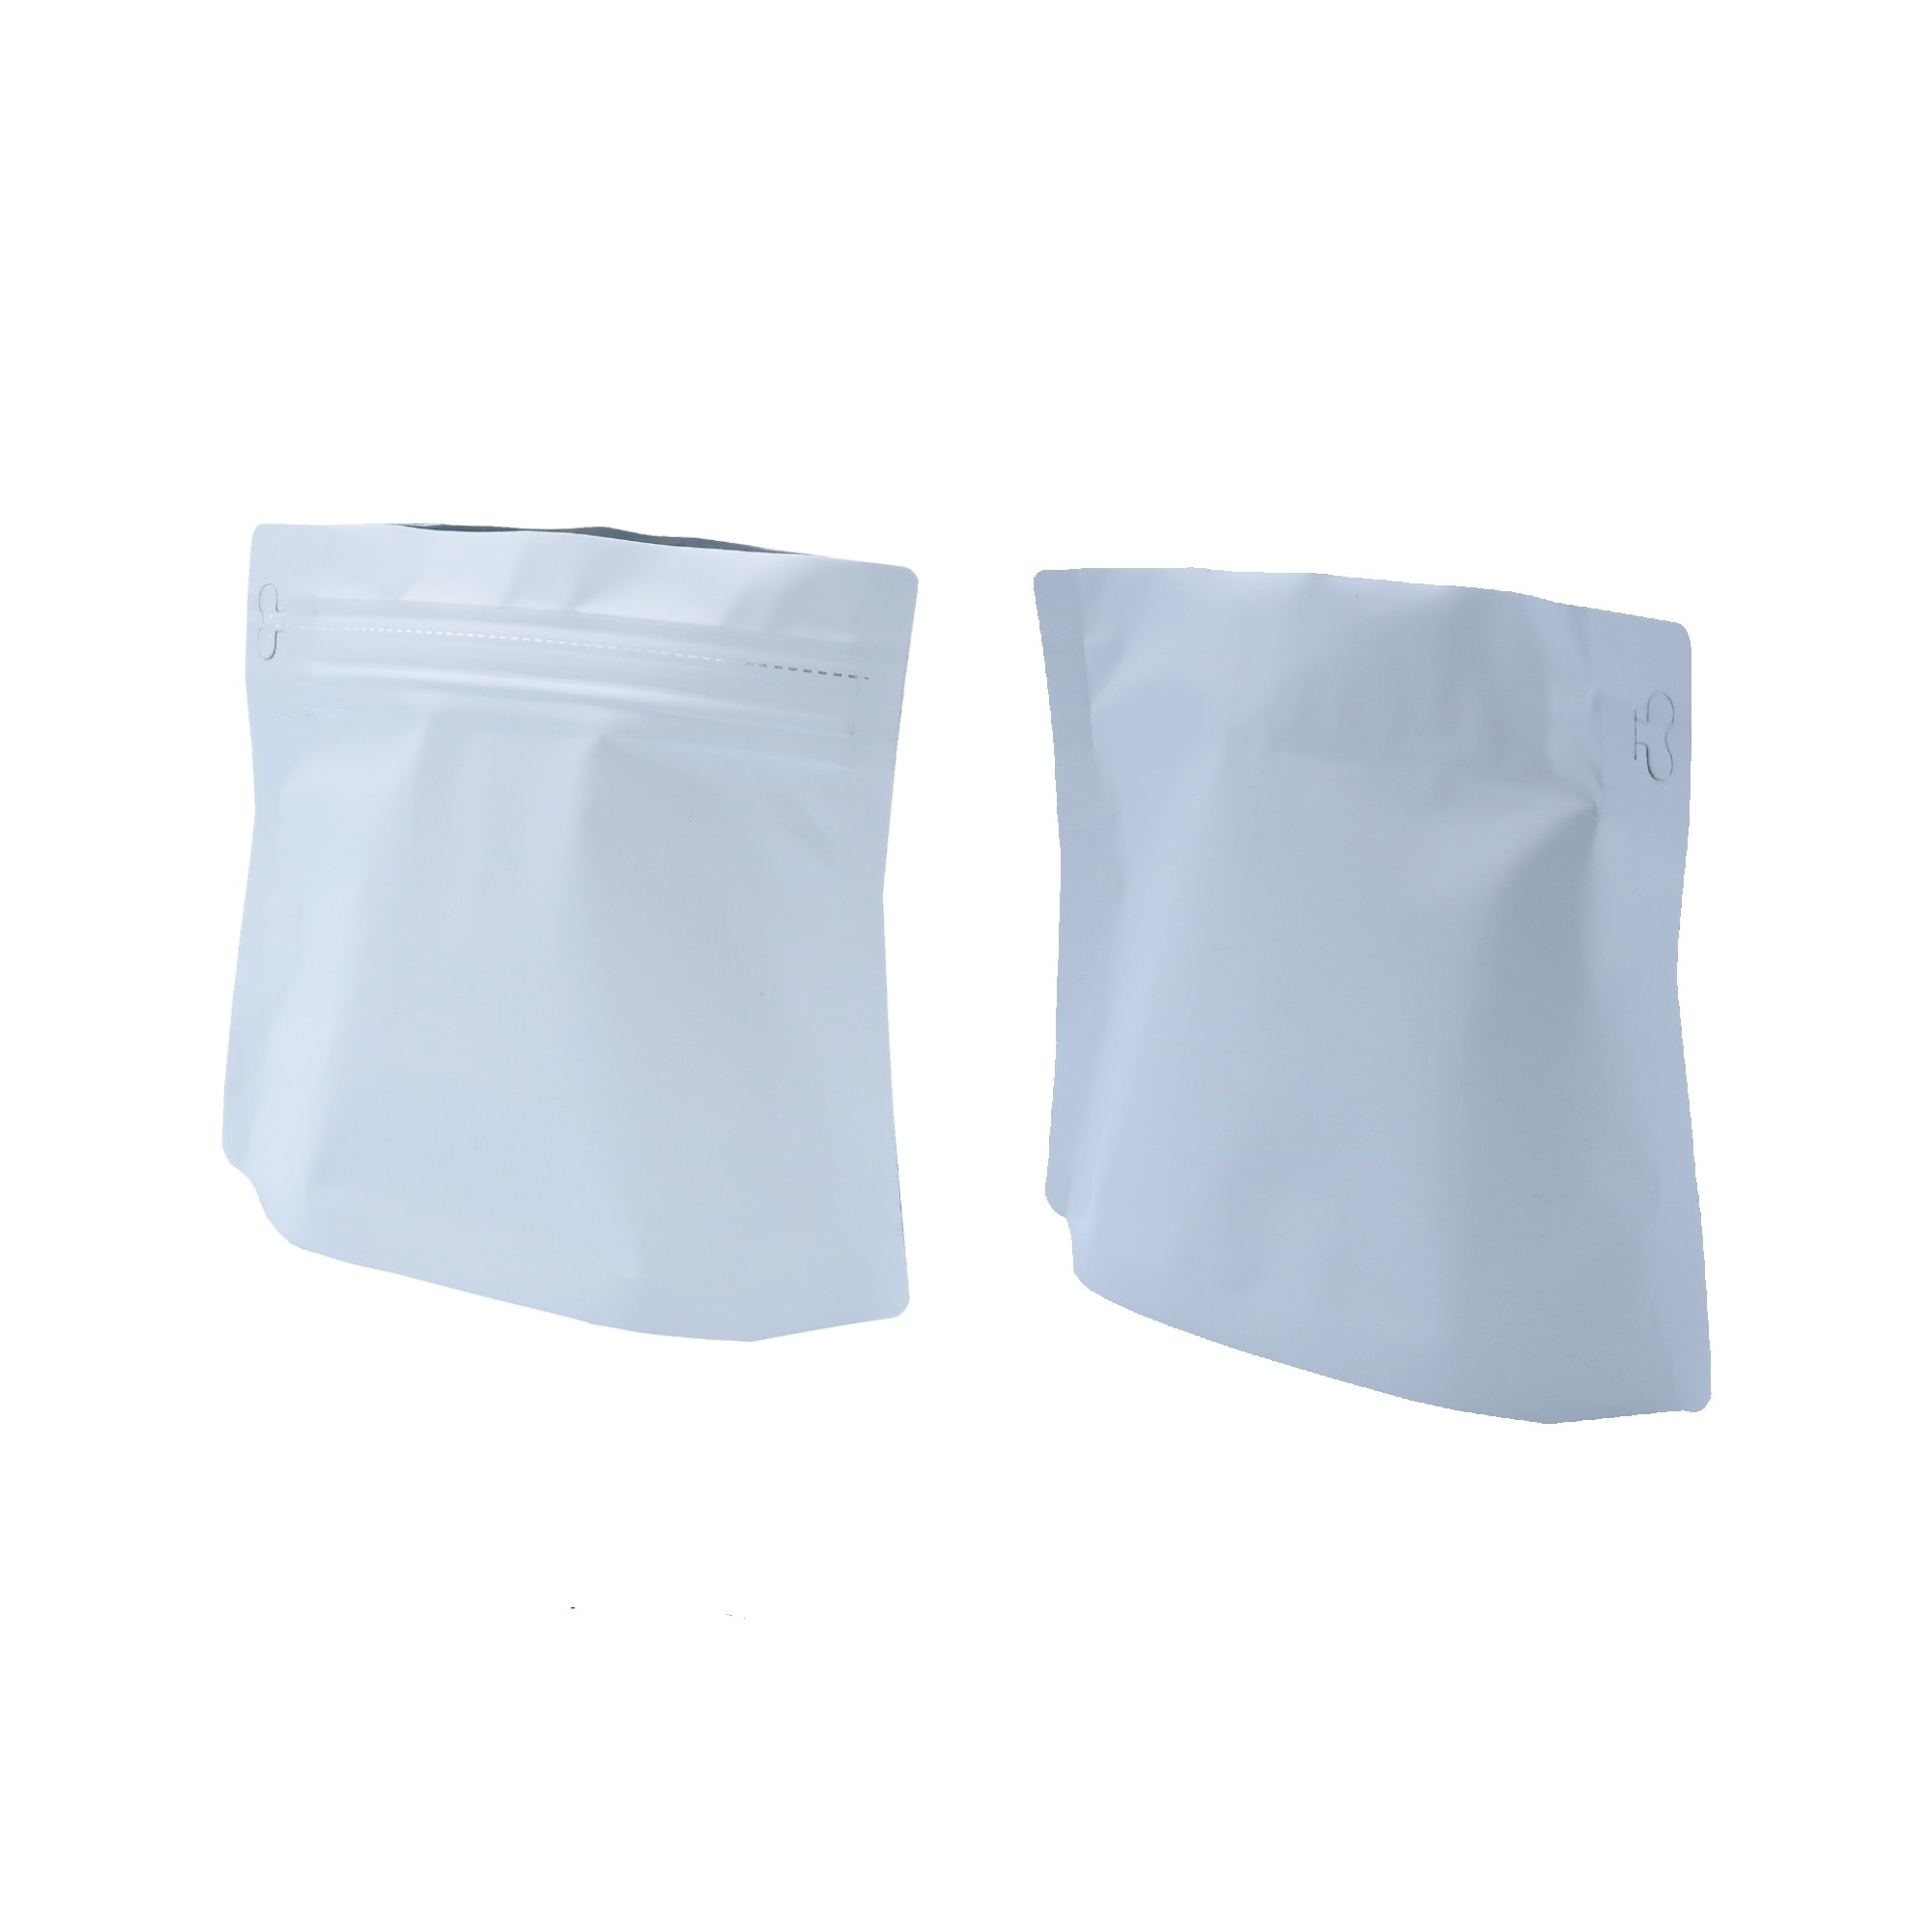 150g Matte White Bottom Gusseted Coffee Storage Aluminum Bags with Pull Tab (100 Bags/Lot)